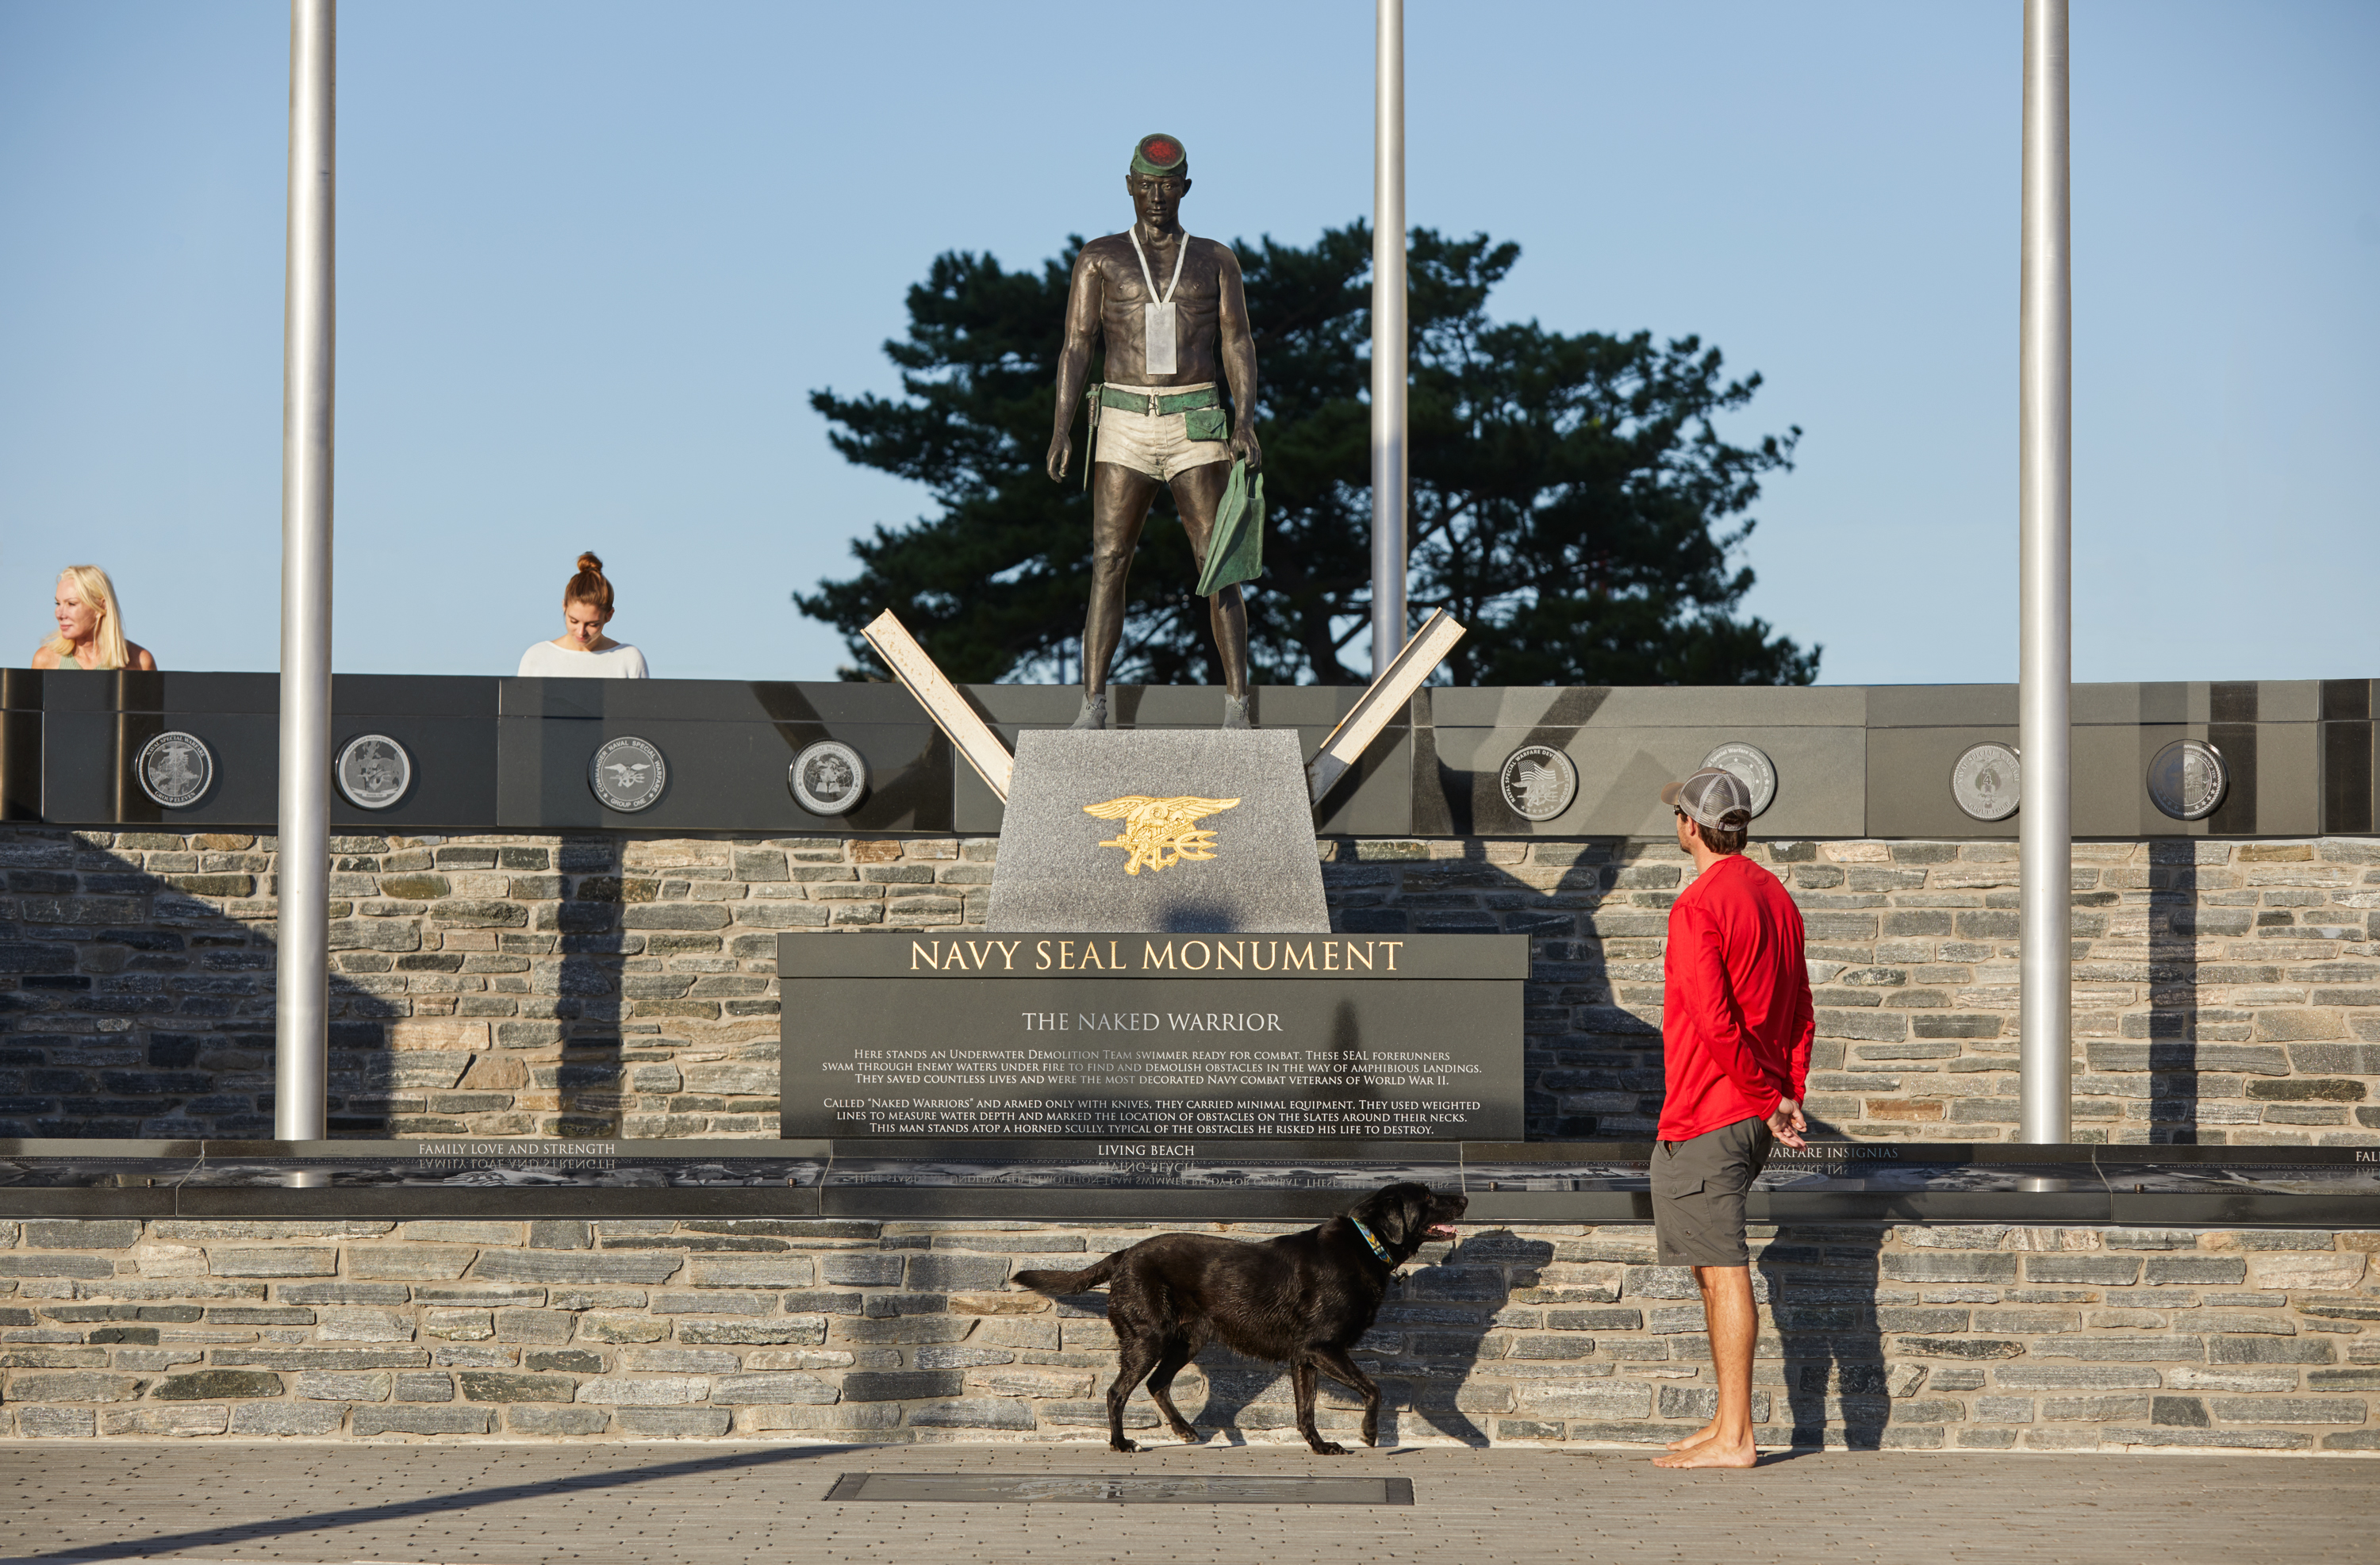 Navy SEAL Monument